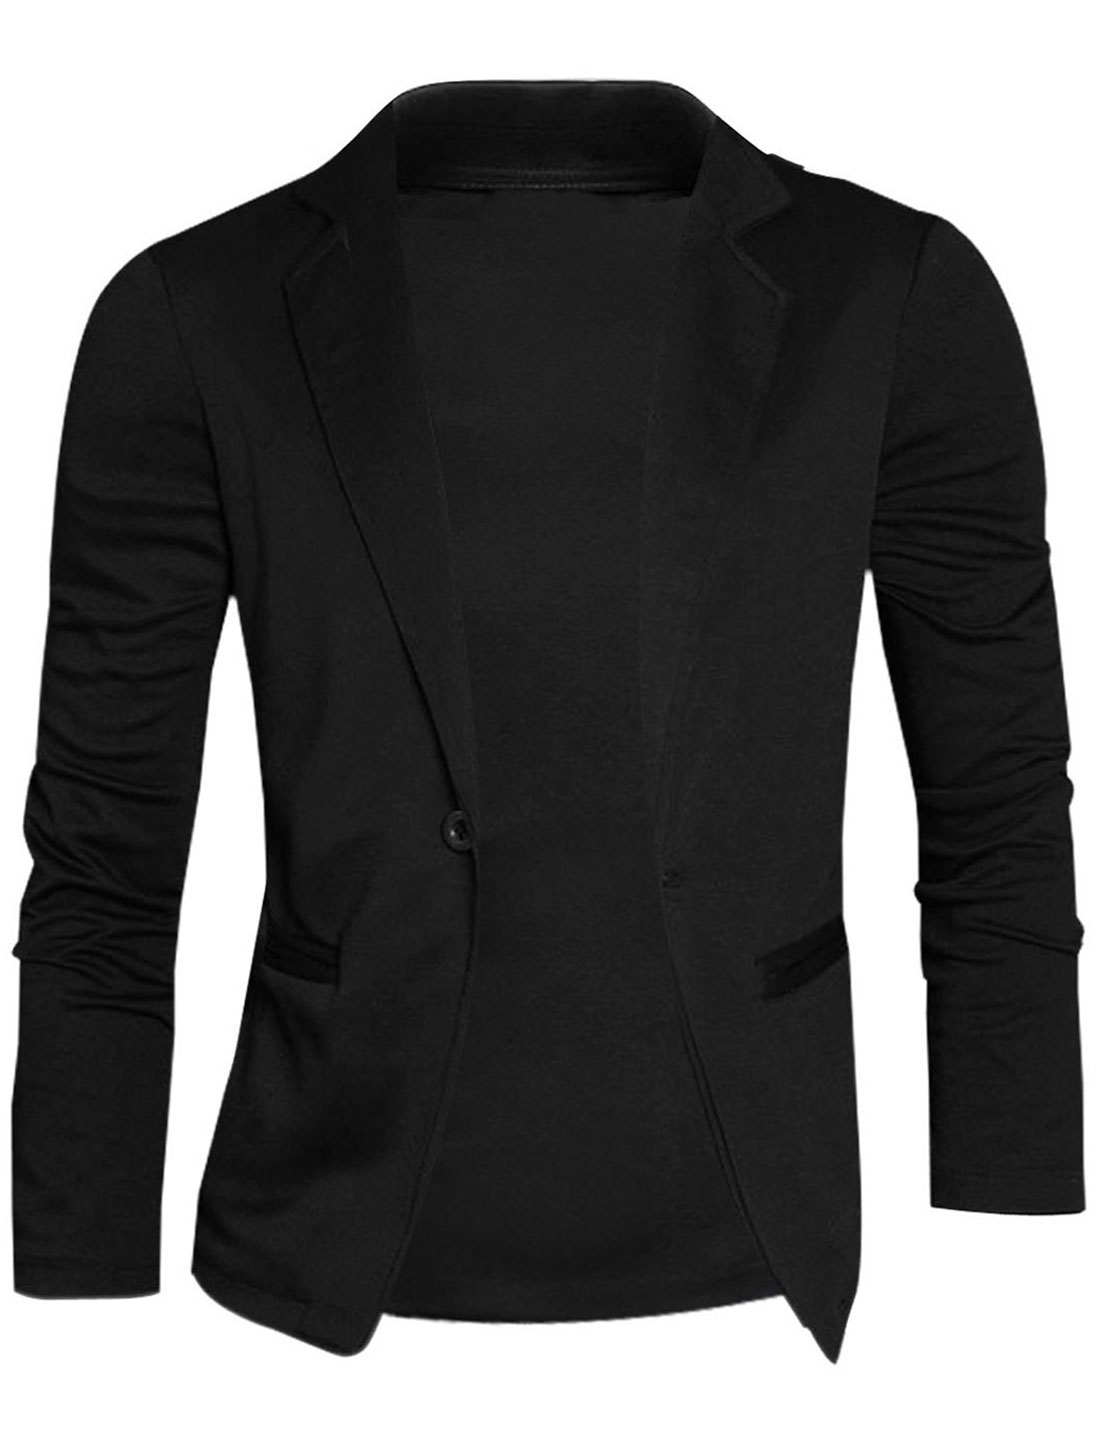 Men Stylish Newly Welt Pockets Single Button Closure Blazer Black S